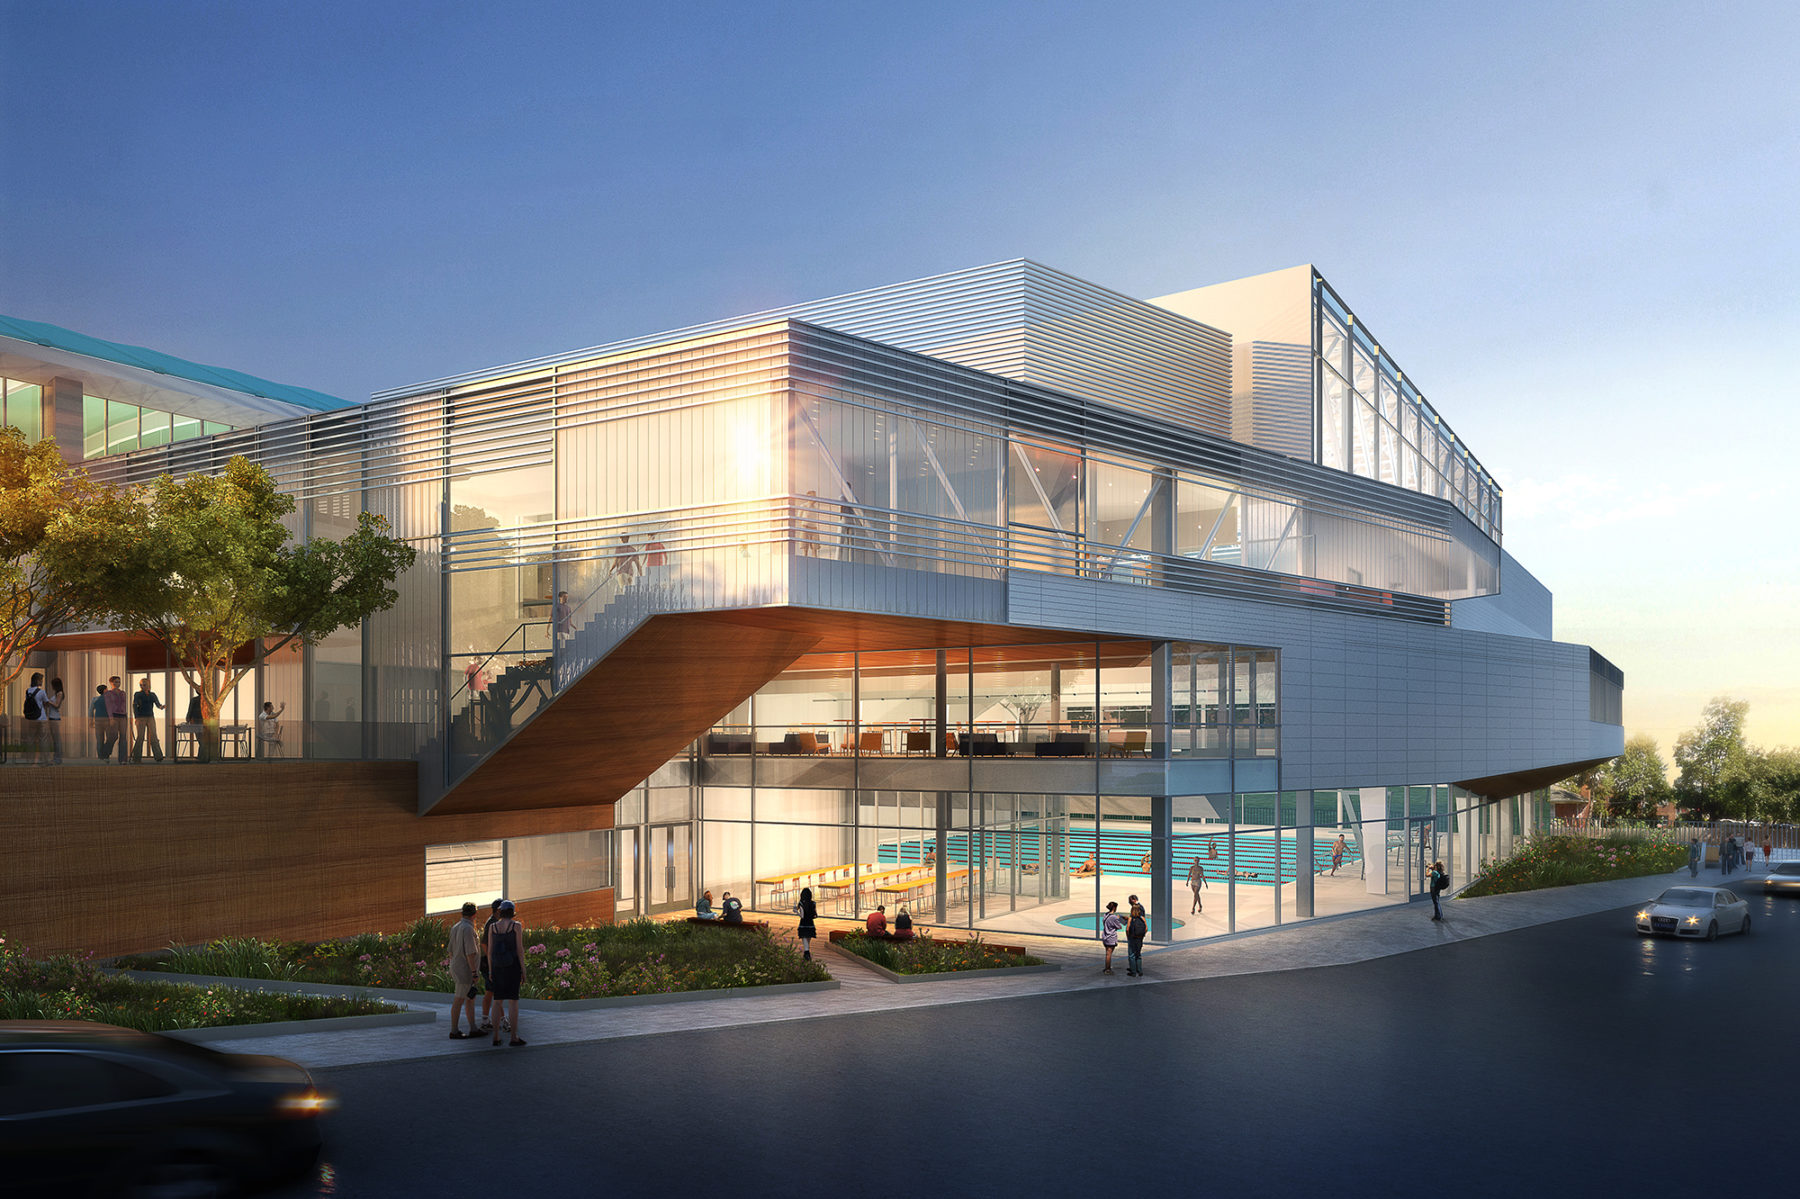 Exterior rendering of the gym illuminated at dusk